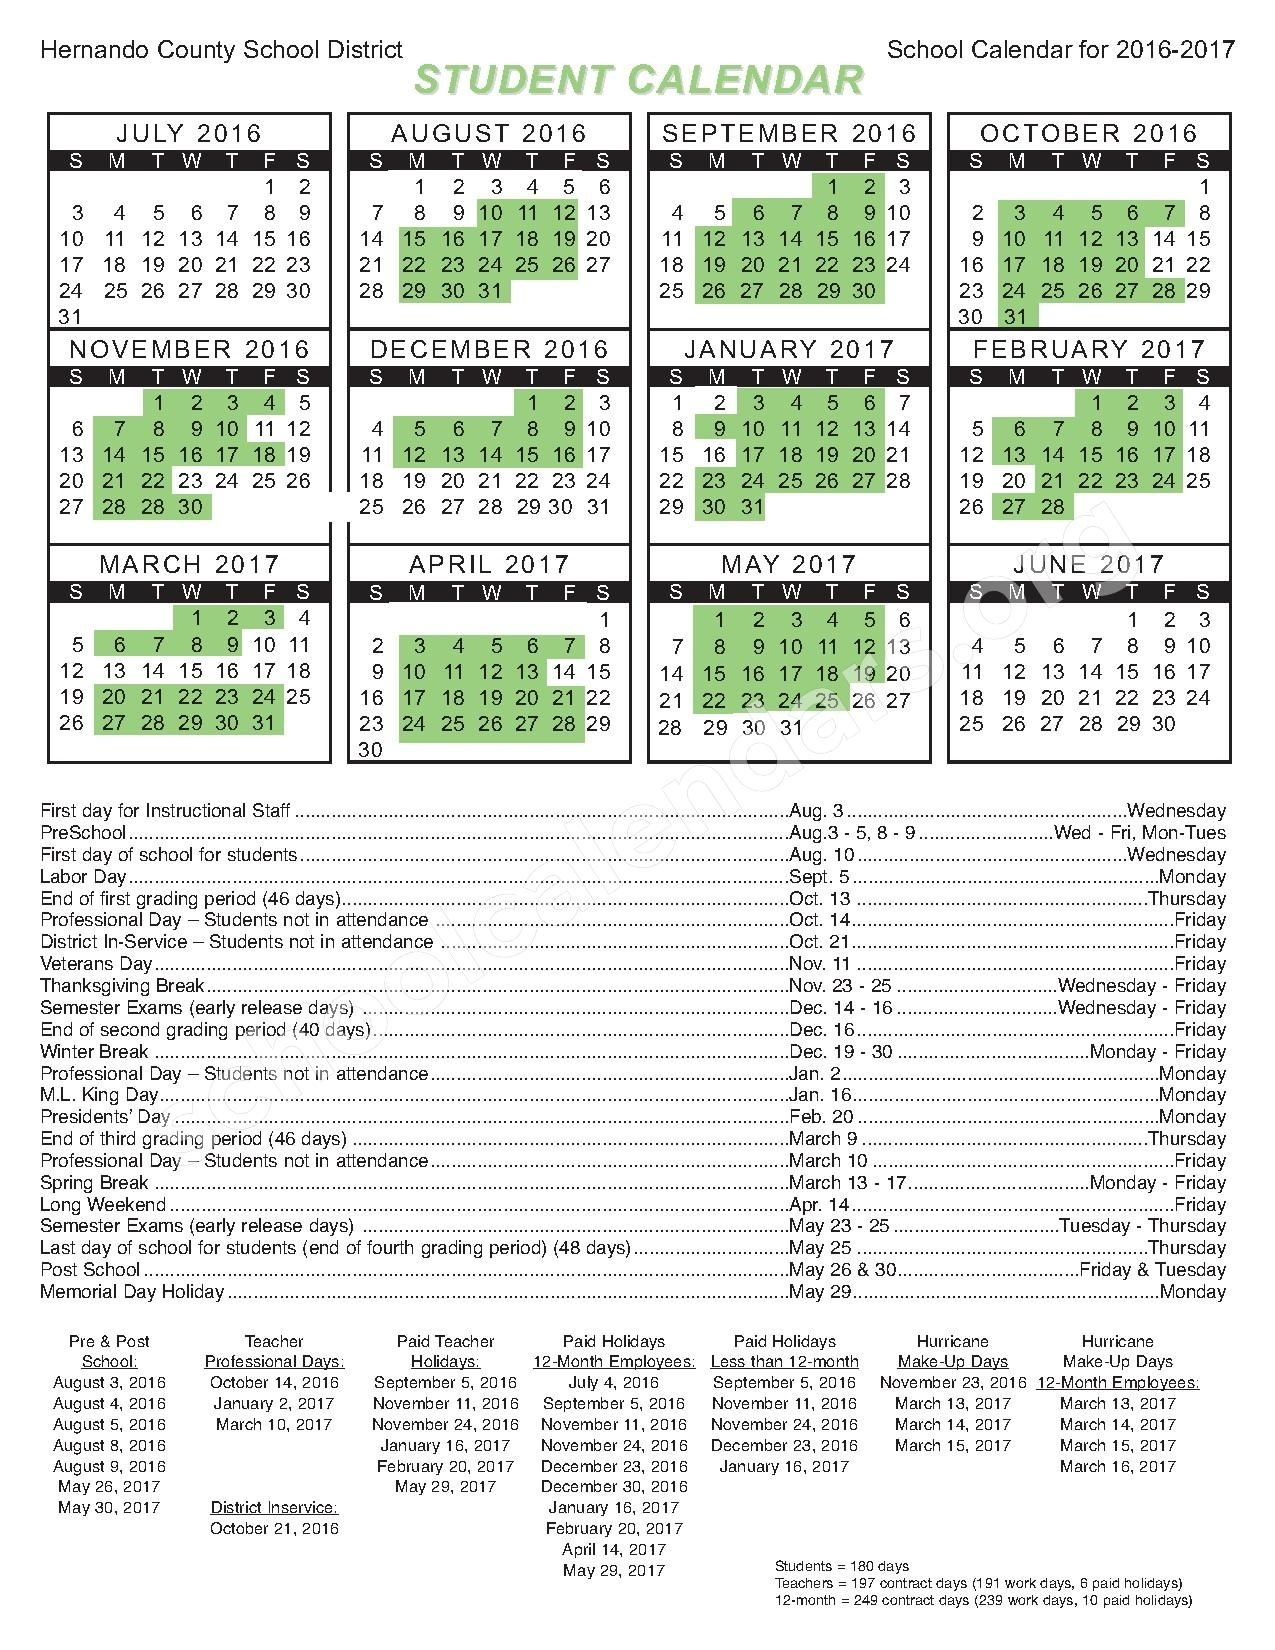 Challenger K-8 School Of Science And Math Calendars – Spring Hill, Fl_Challenger K-8 School Calendar